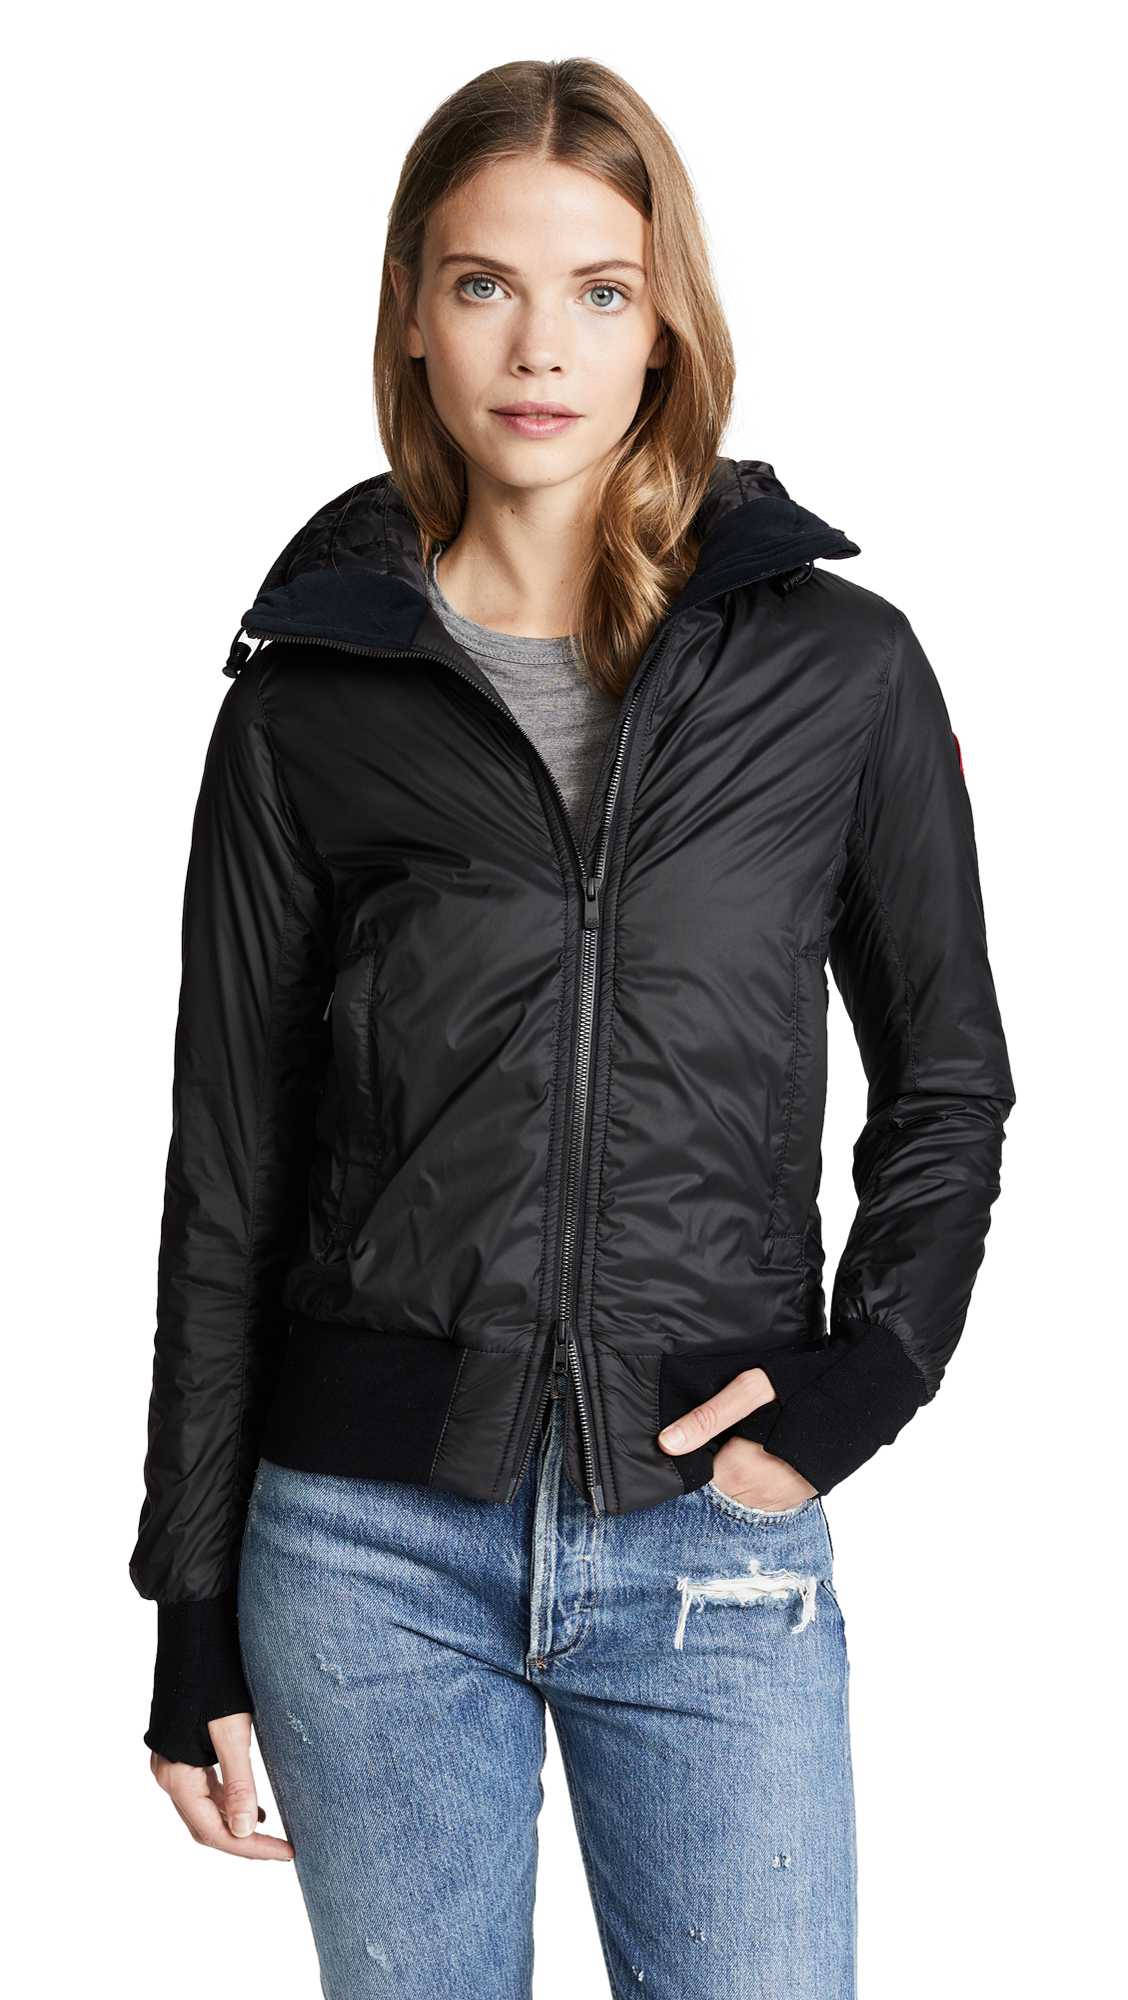 c361296dfbb4 discount code for canada goose camp hooded jacket black leather ...